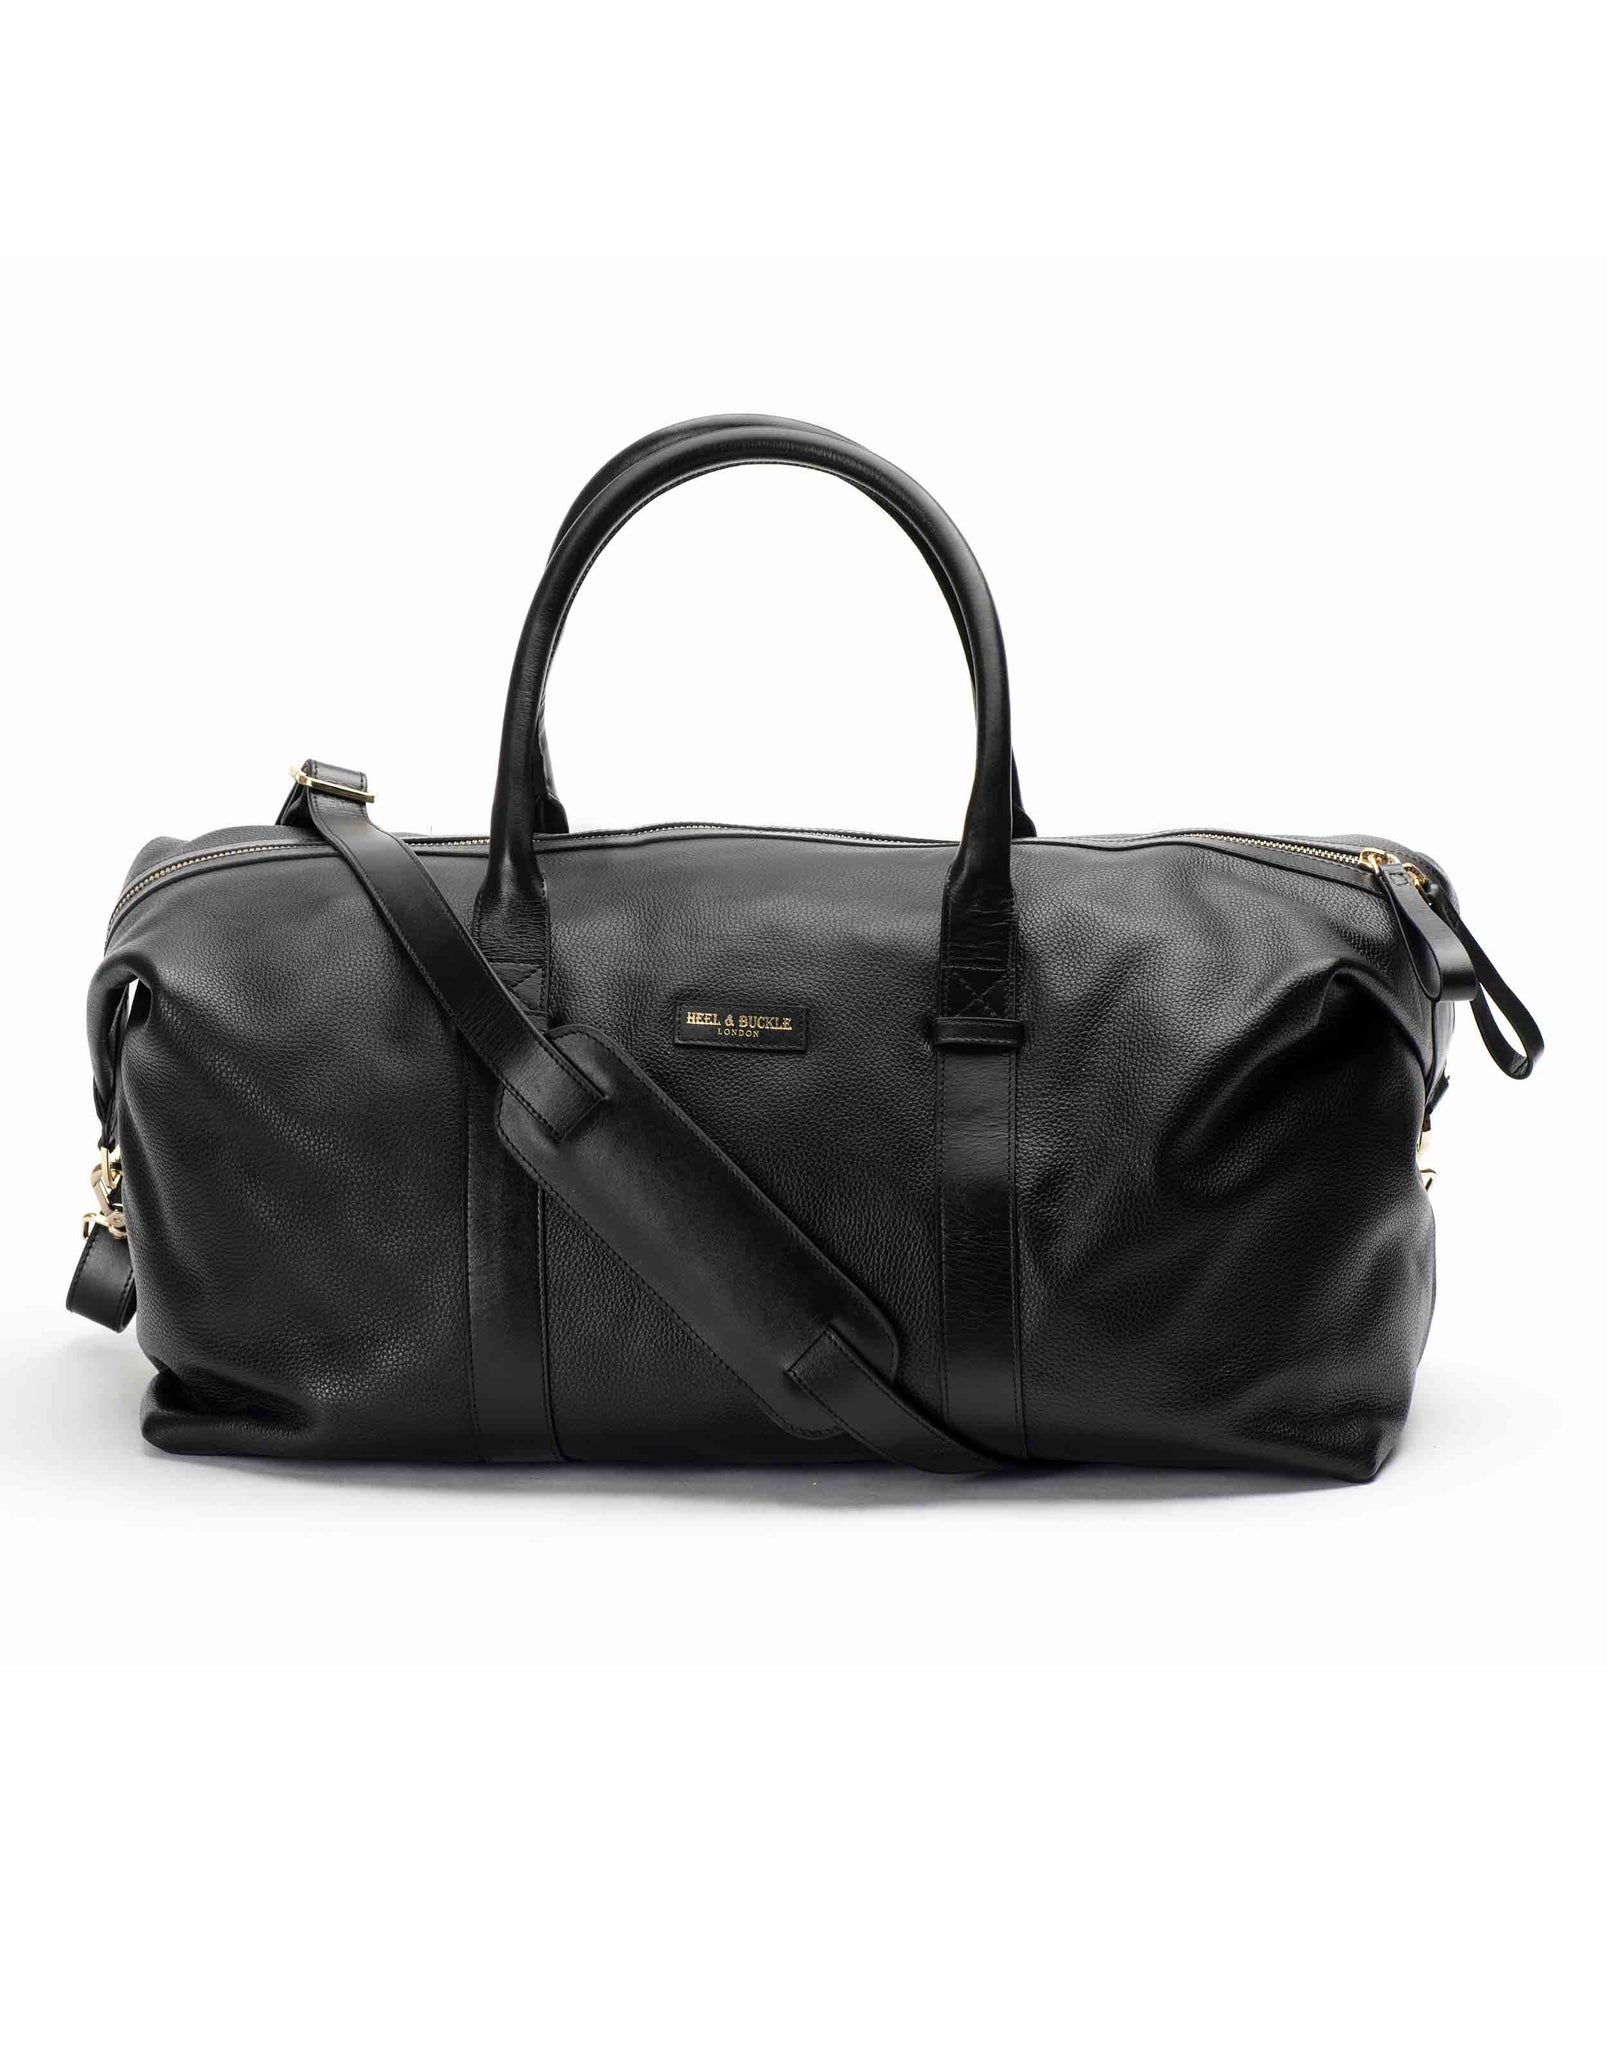 Black Textured Leather Duffle Bag